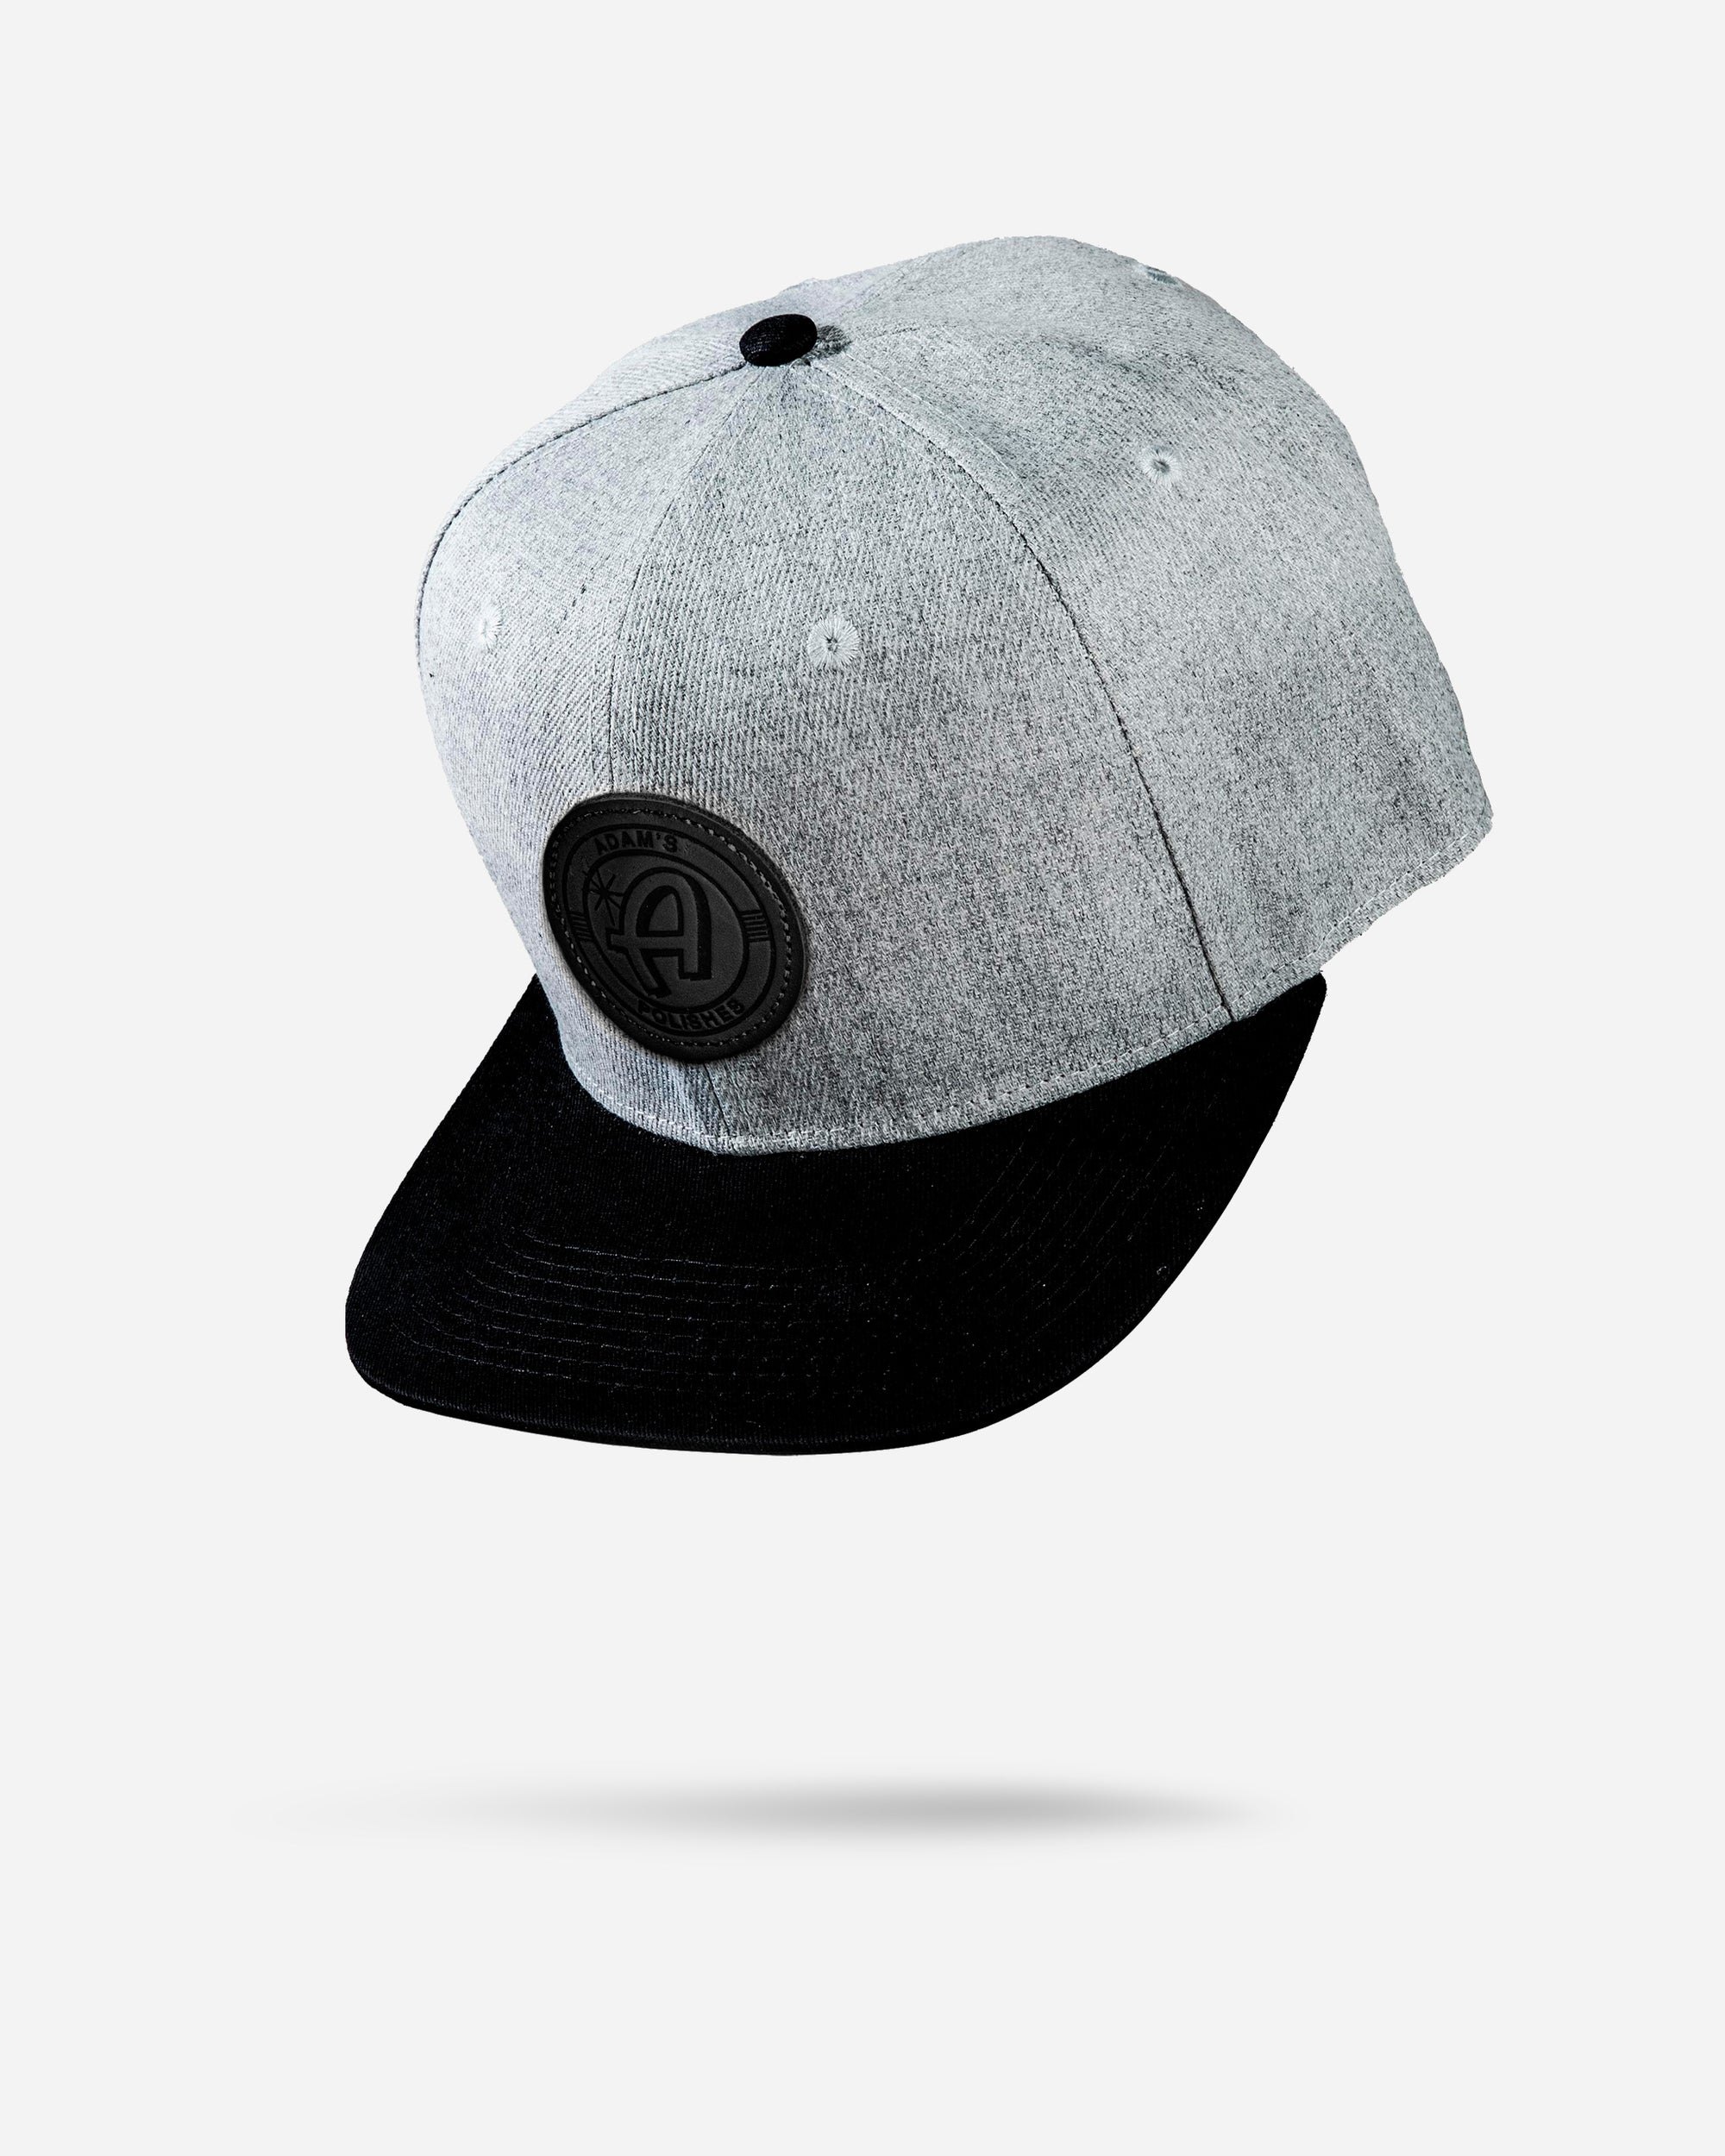 Adam's Black/Gray Snapback - Black Patch